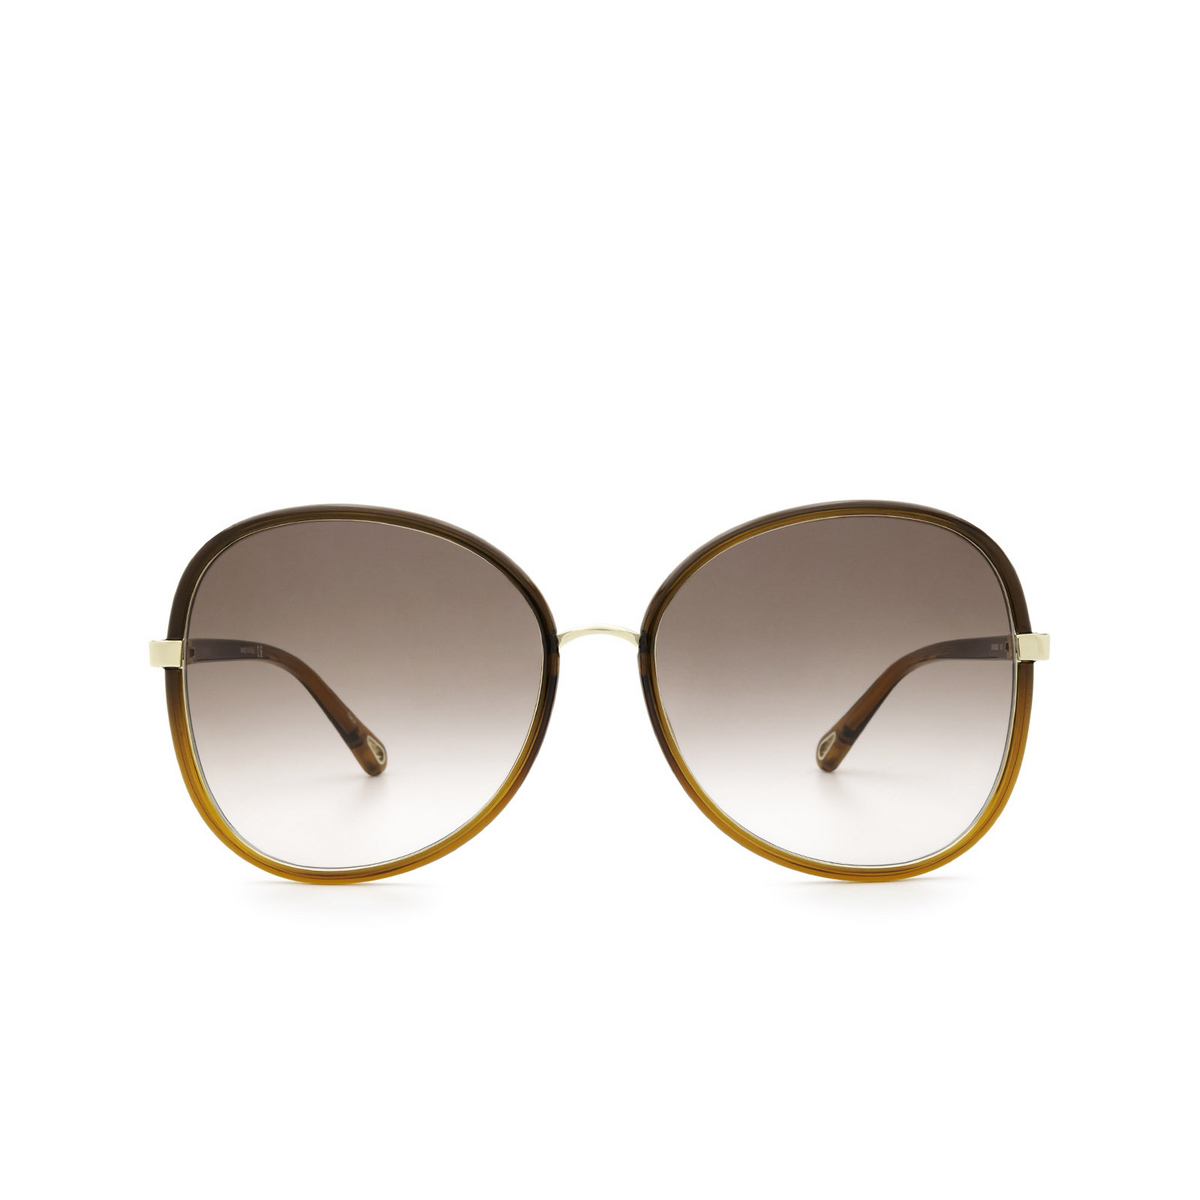 Chloé® Butterfly Sunglasses: CH0030S color Brown 005 - front view.